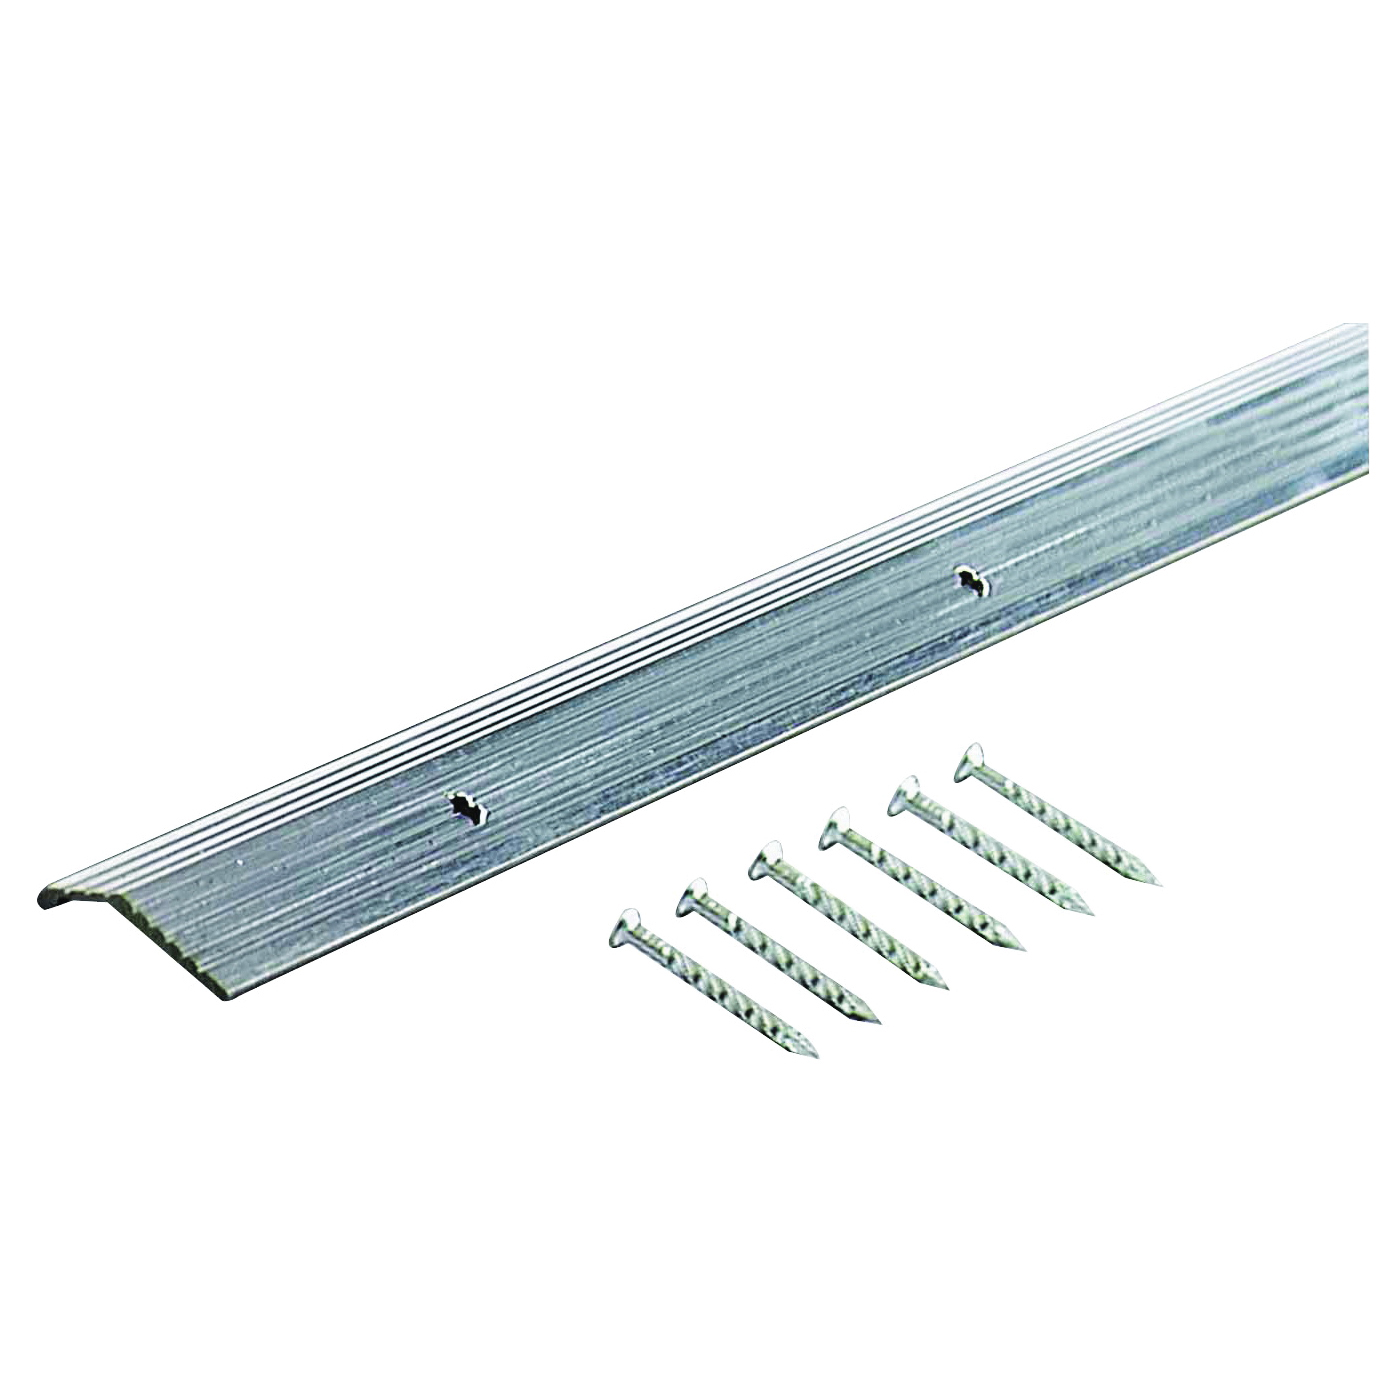 Picture of M-D 78006 Carpet Trim, 36 in L, 7/8 in W, Fluted Surface, Aluminum, Silver